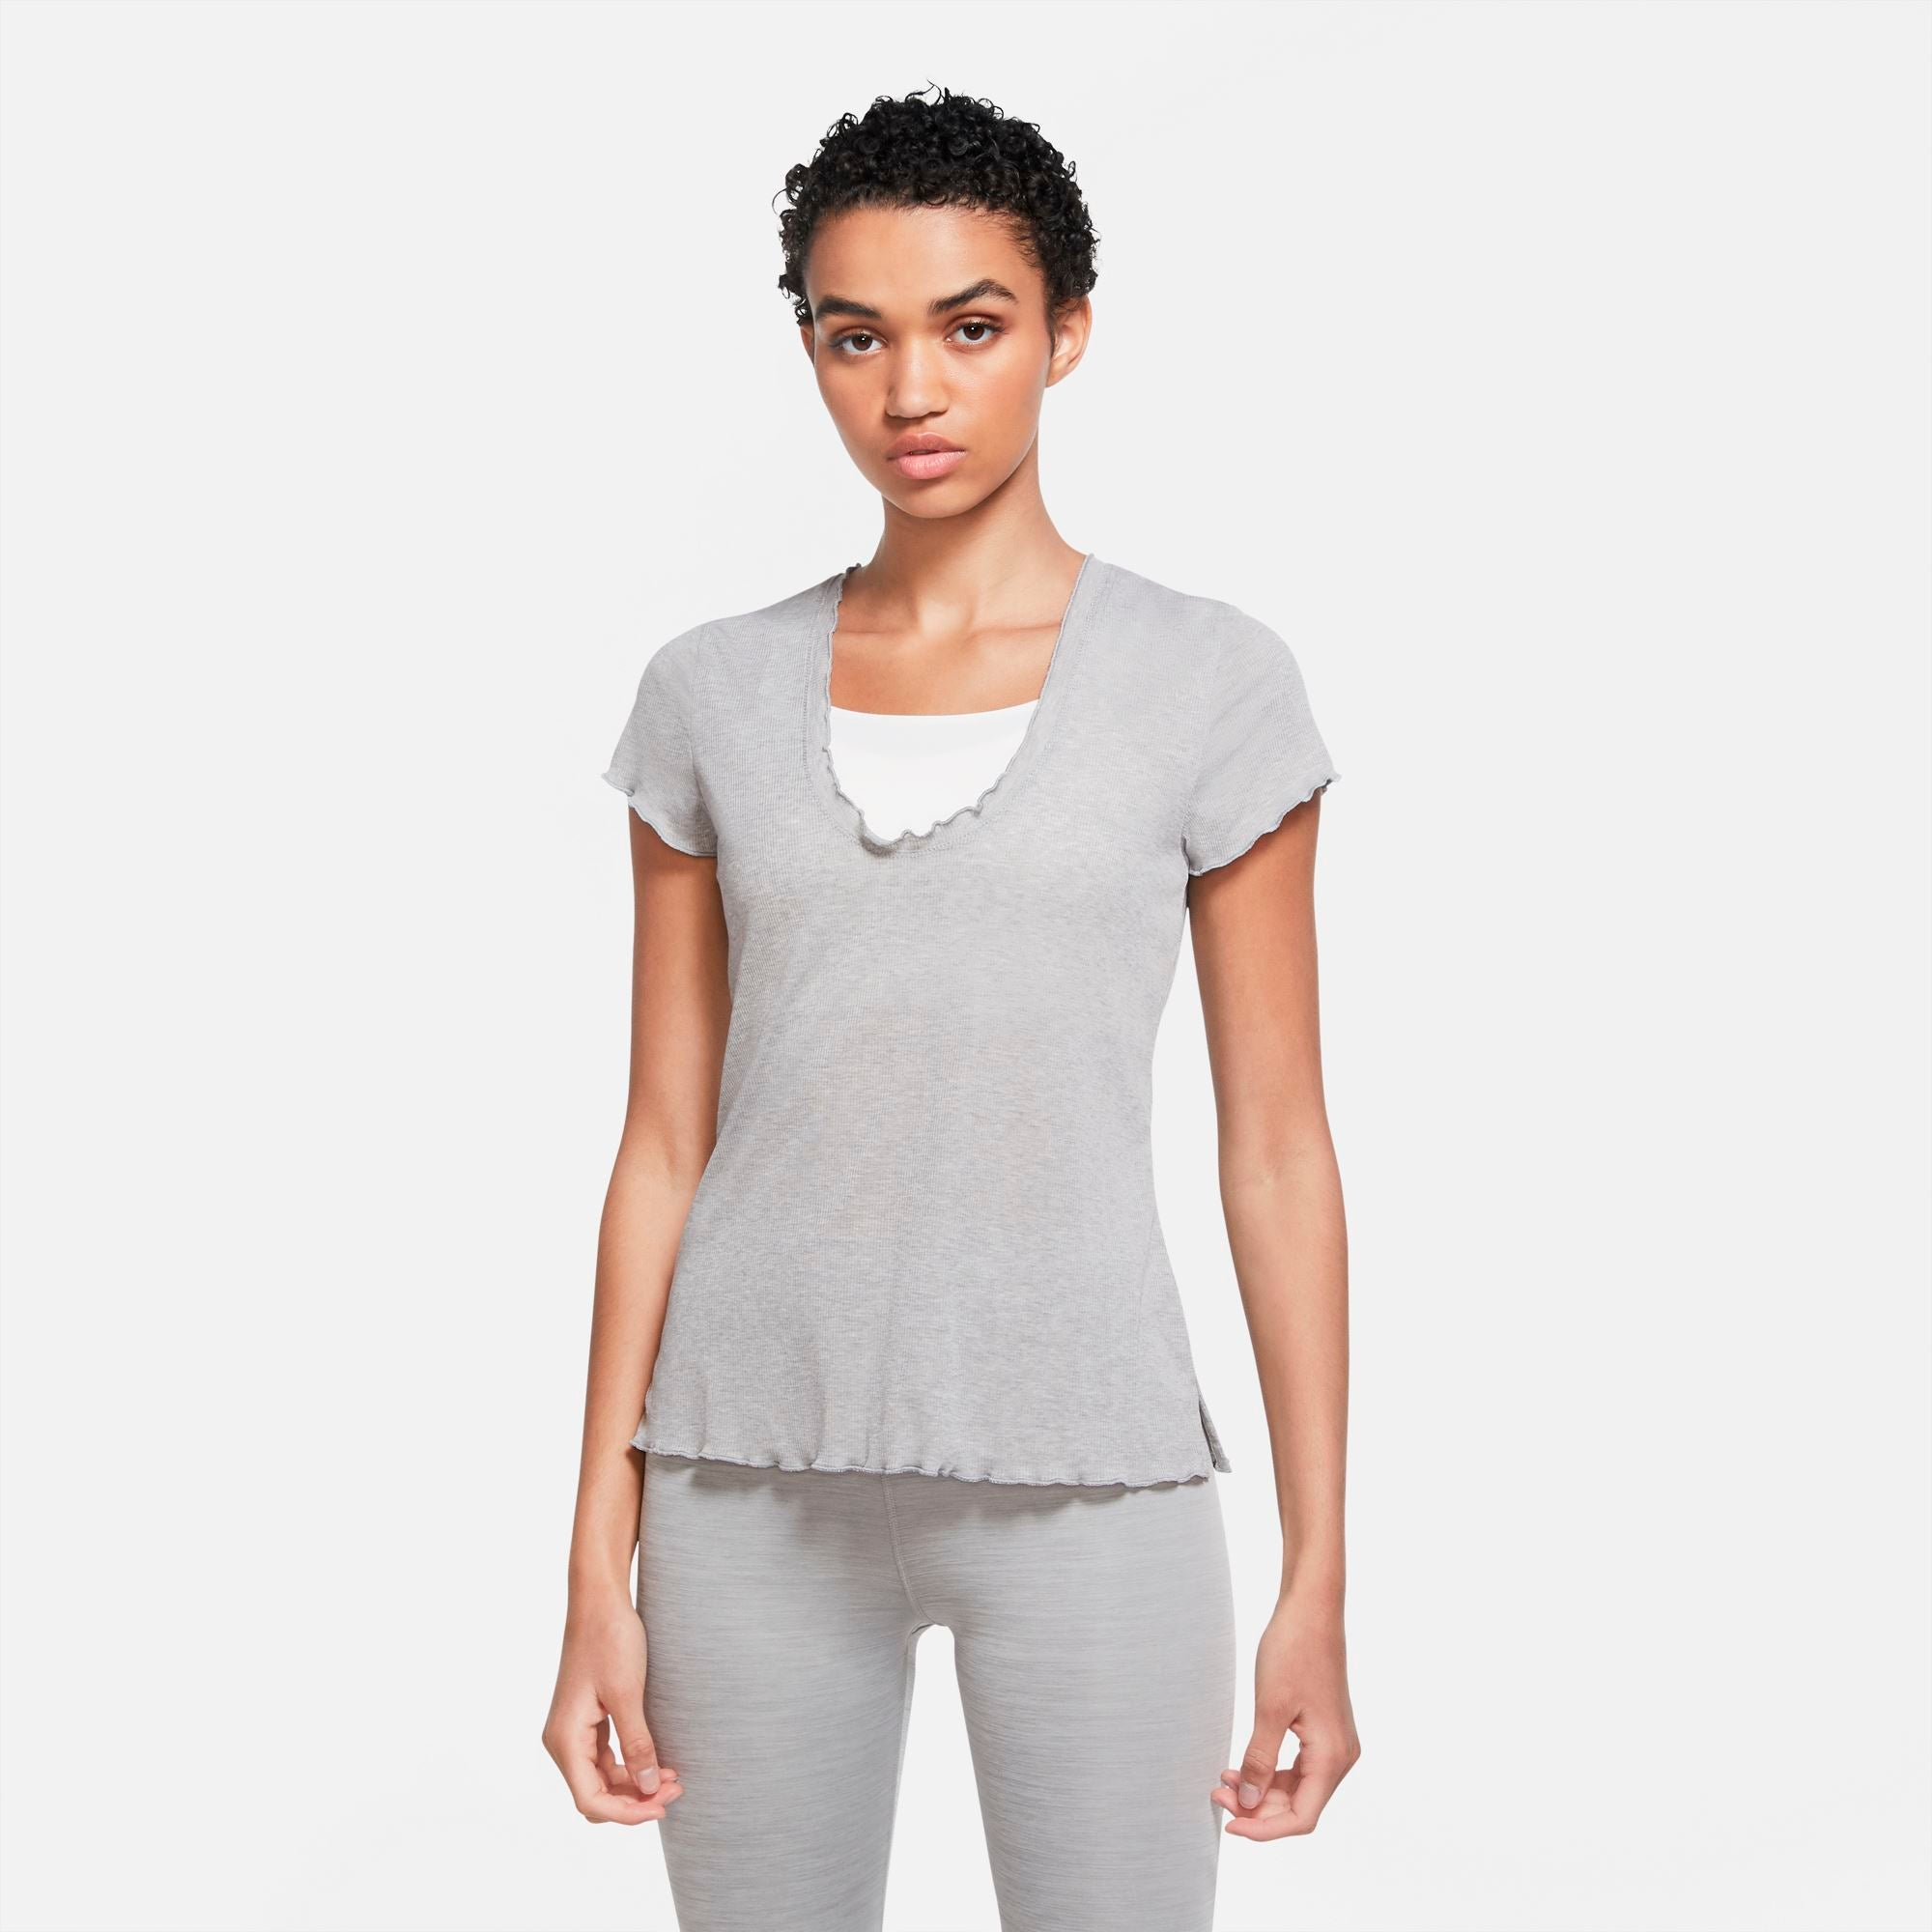 Nike Yoga Short-Sleeve Top - Particle Grey/Htr/Platinum Tint SP-ApparelTees-Womens Nike